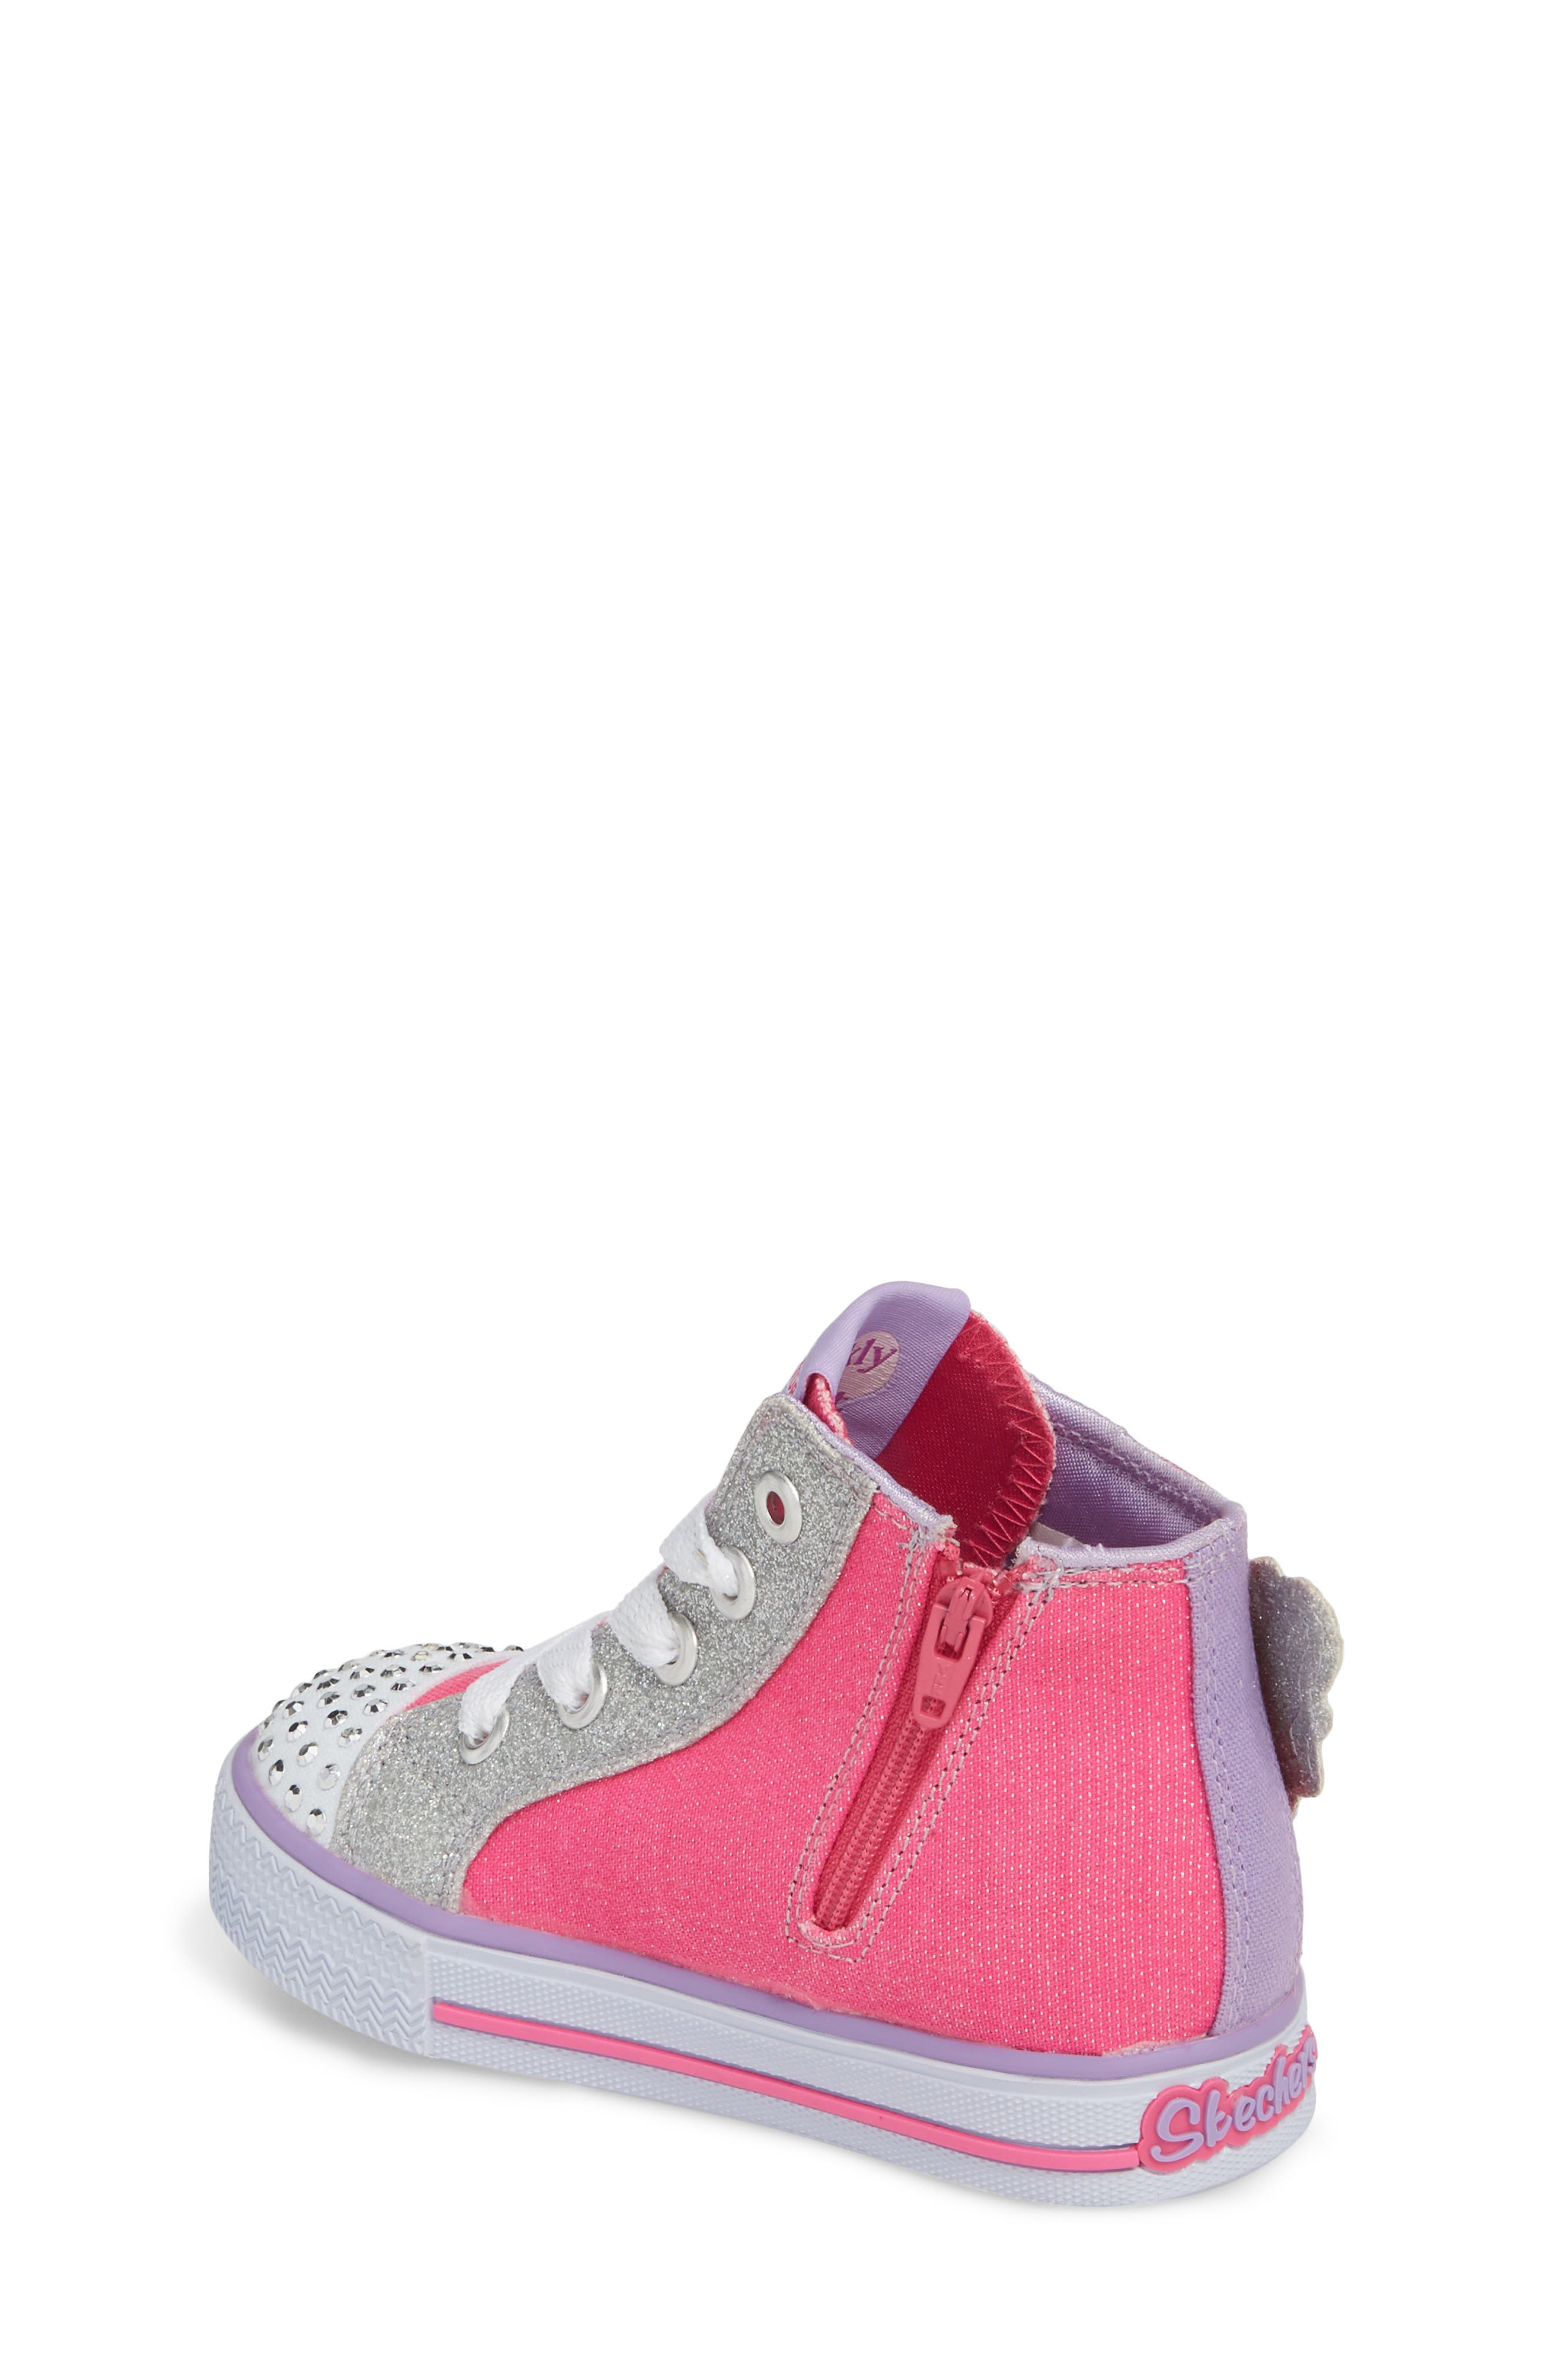 Twinkle Toes Shuffles Fooling Flutters Light-Up High Top Sneaker,                             Alternate thumbnail 2, color,                             650